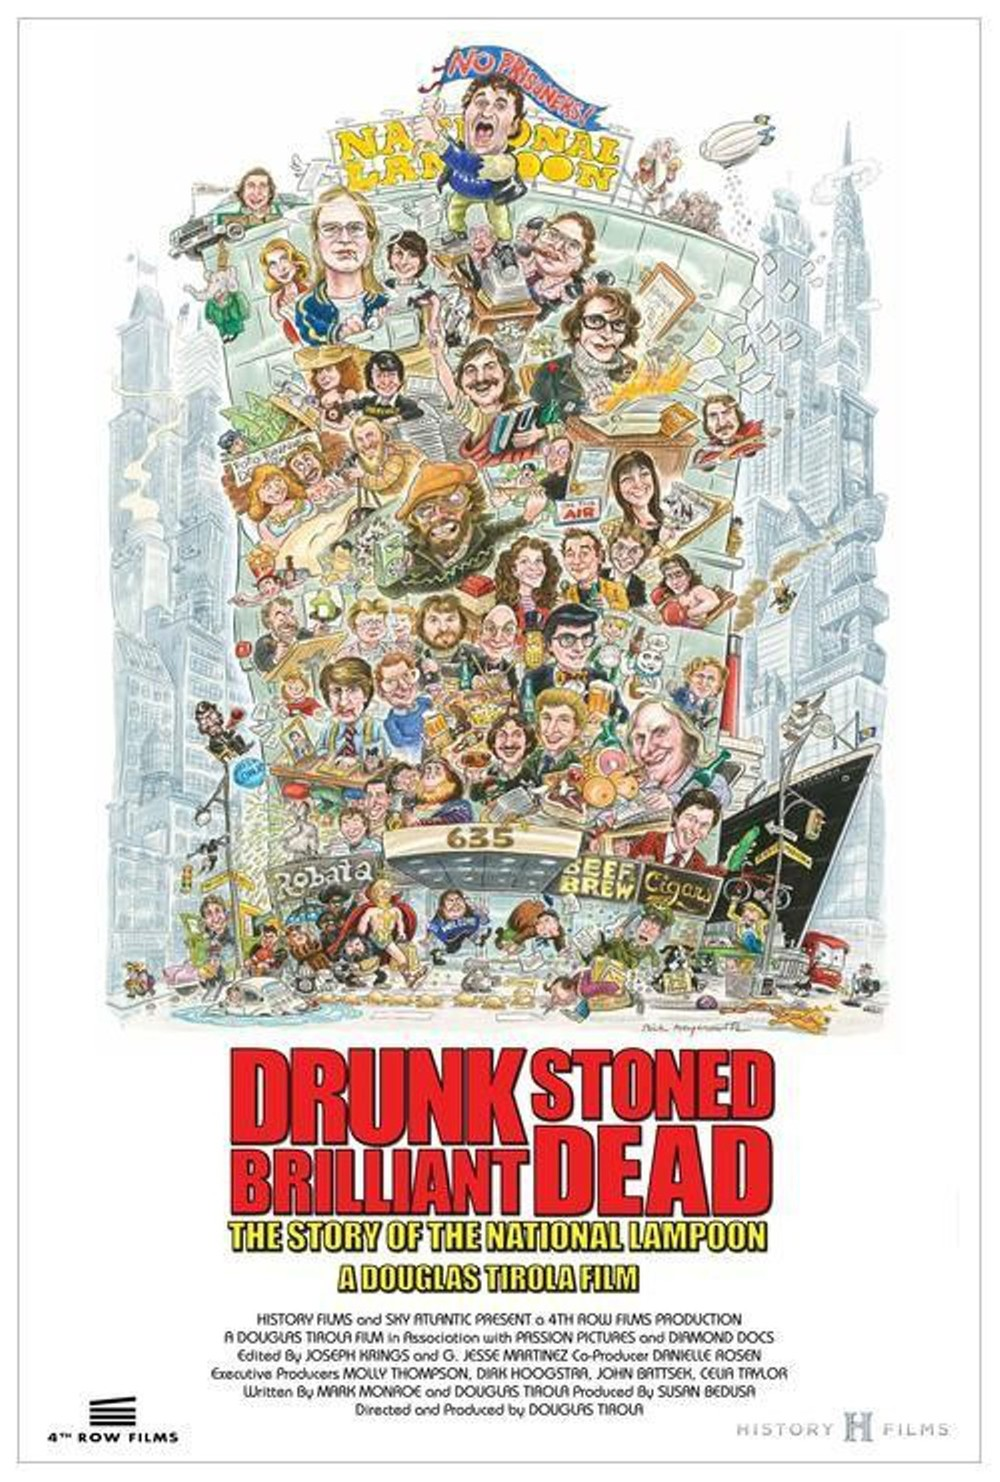 drunk_stoned_brilliant_dead_the_story_of_the_national_lampoon-poster.jpg